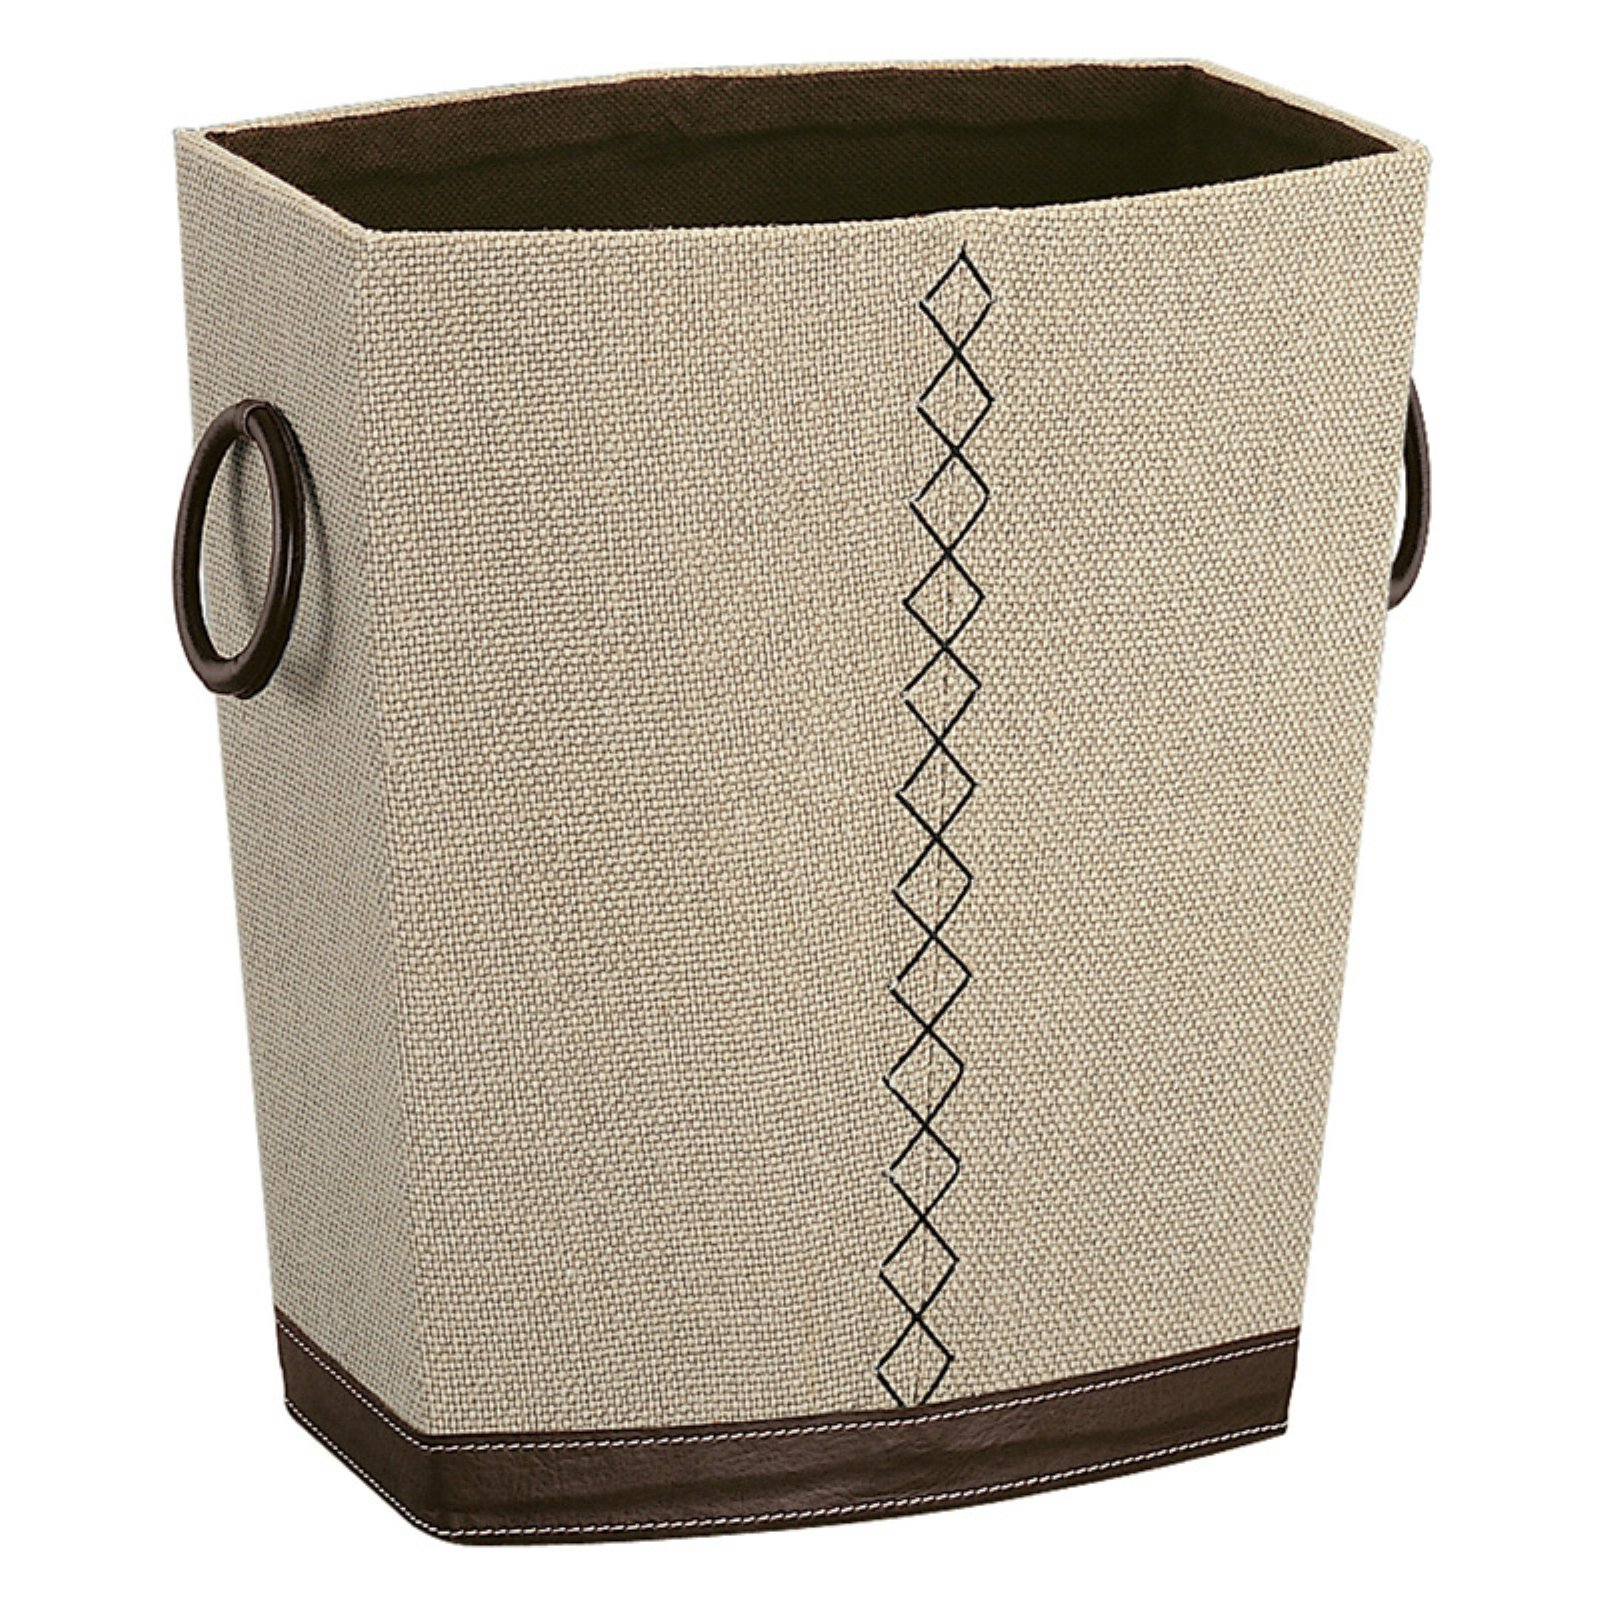 Organize It All Beige and Brown Wastebasket